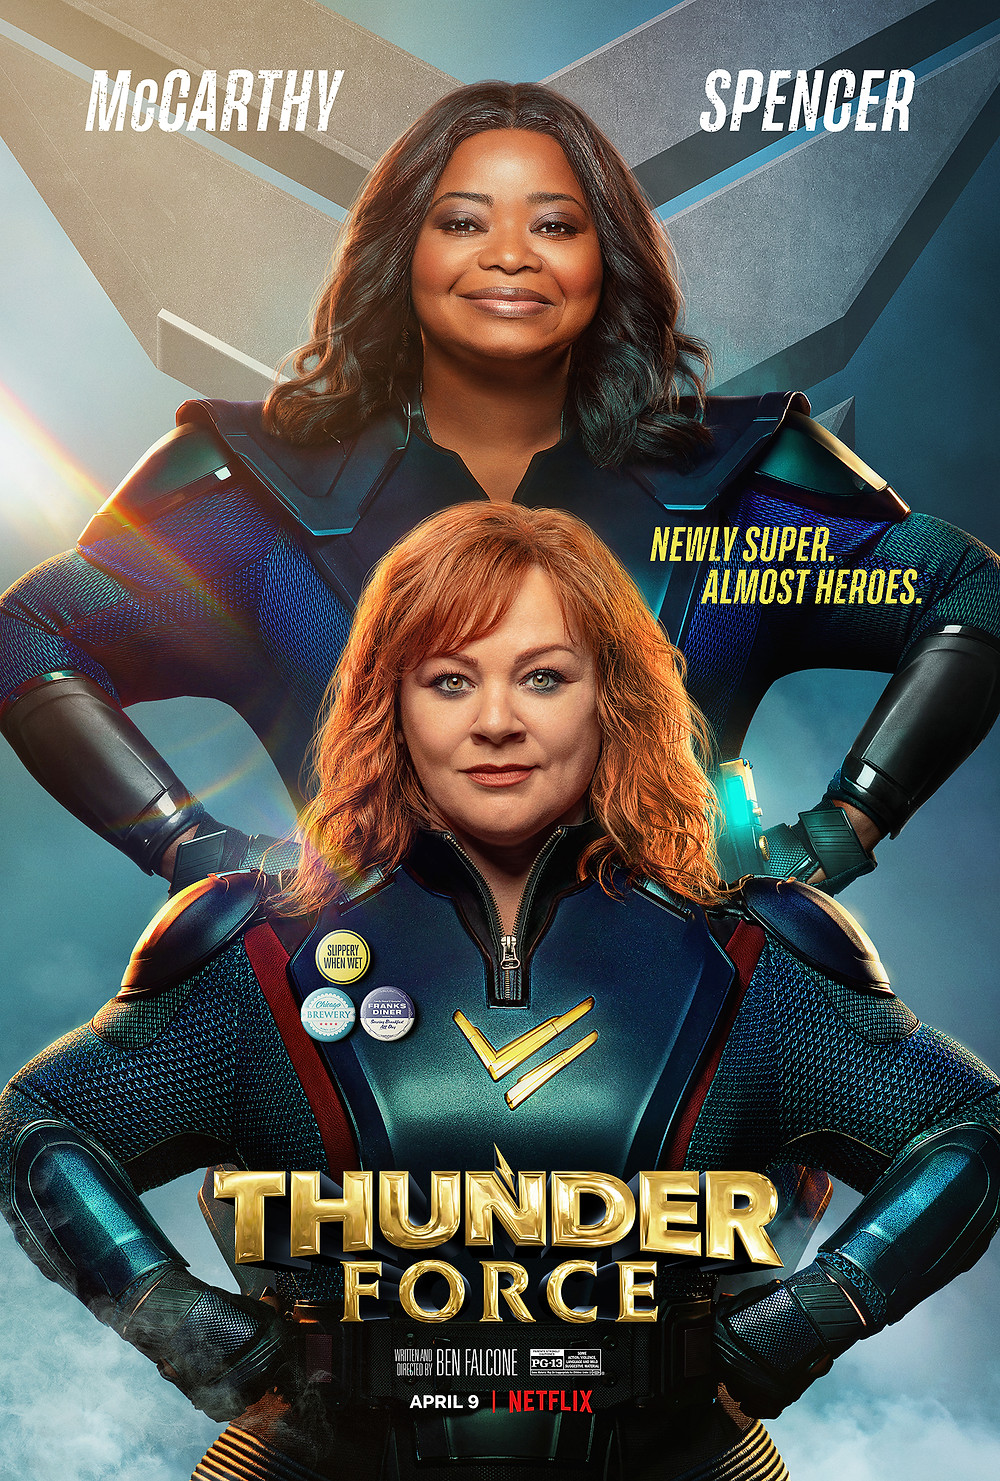 The main leads, McCarthy and Spencer, pose as superheroes best buddies with the film's titles and credits underneath.